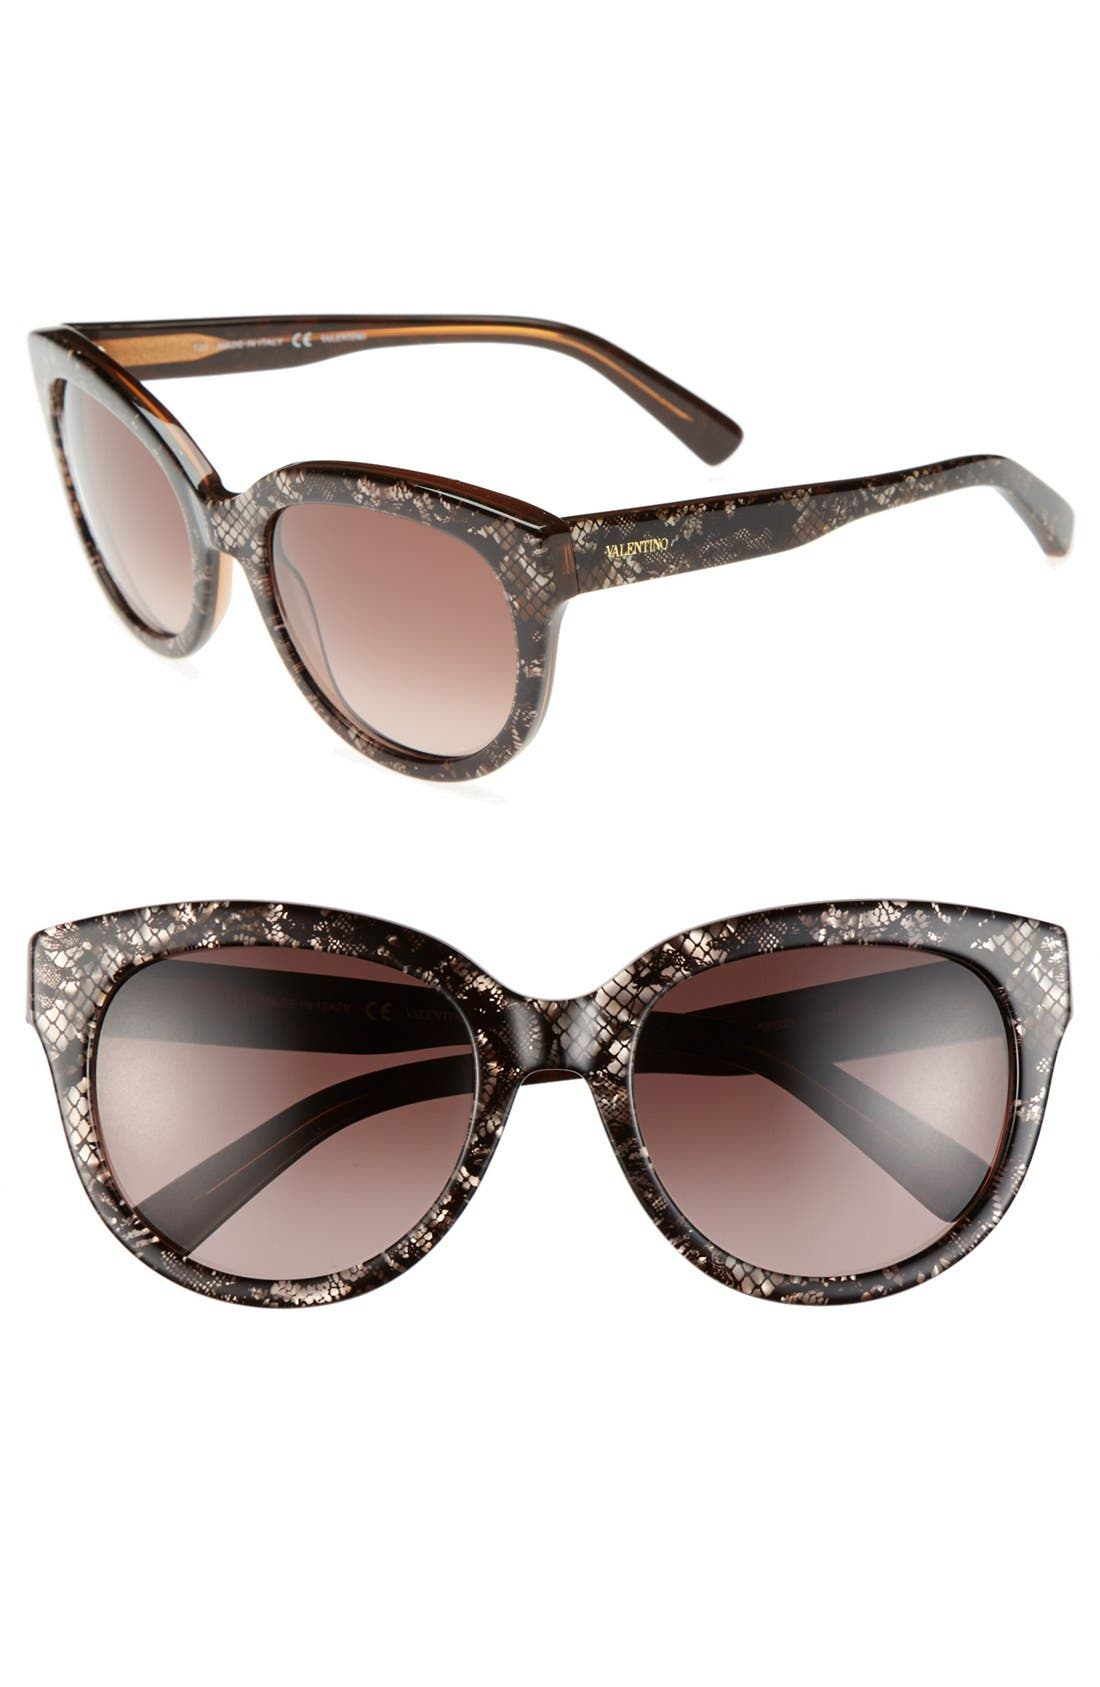 Alternate Image 1 Selected - Valentino 54mm Retro Sunglasses